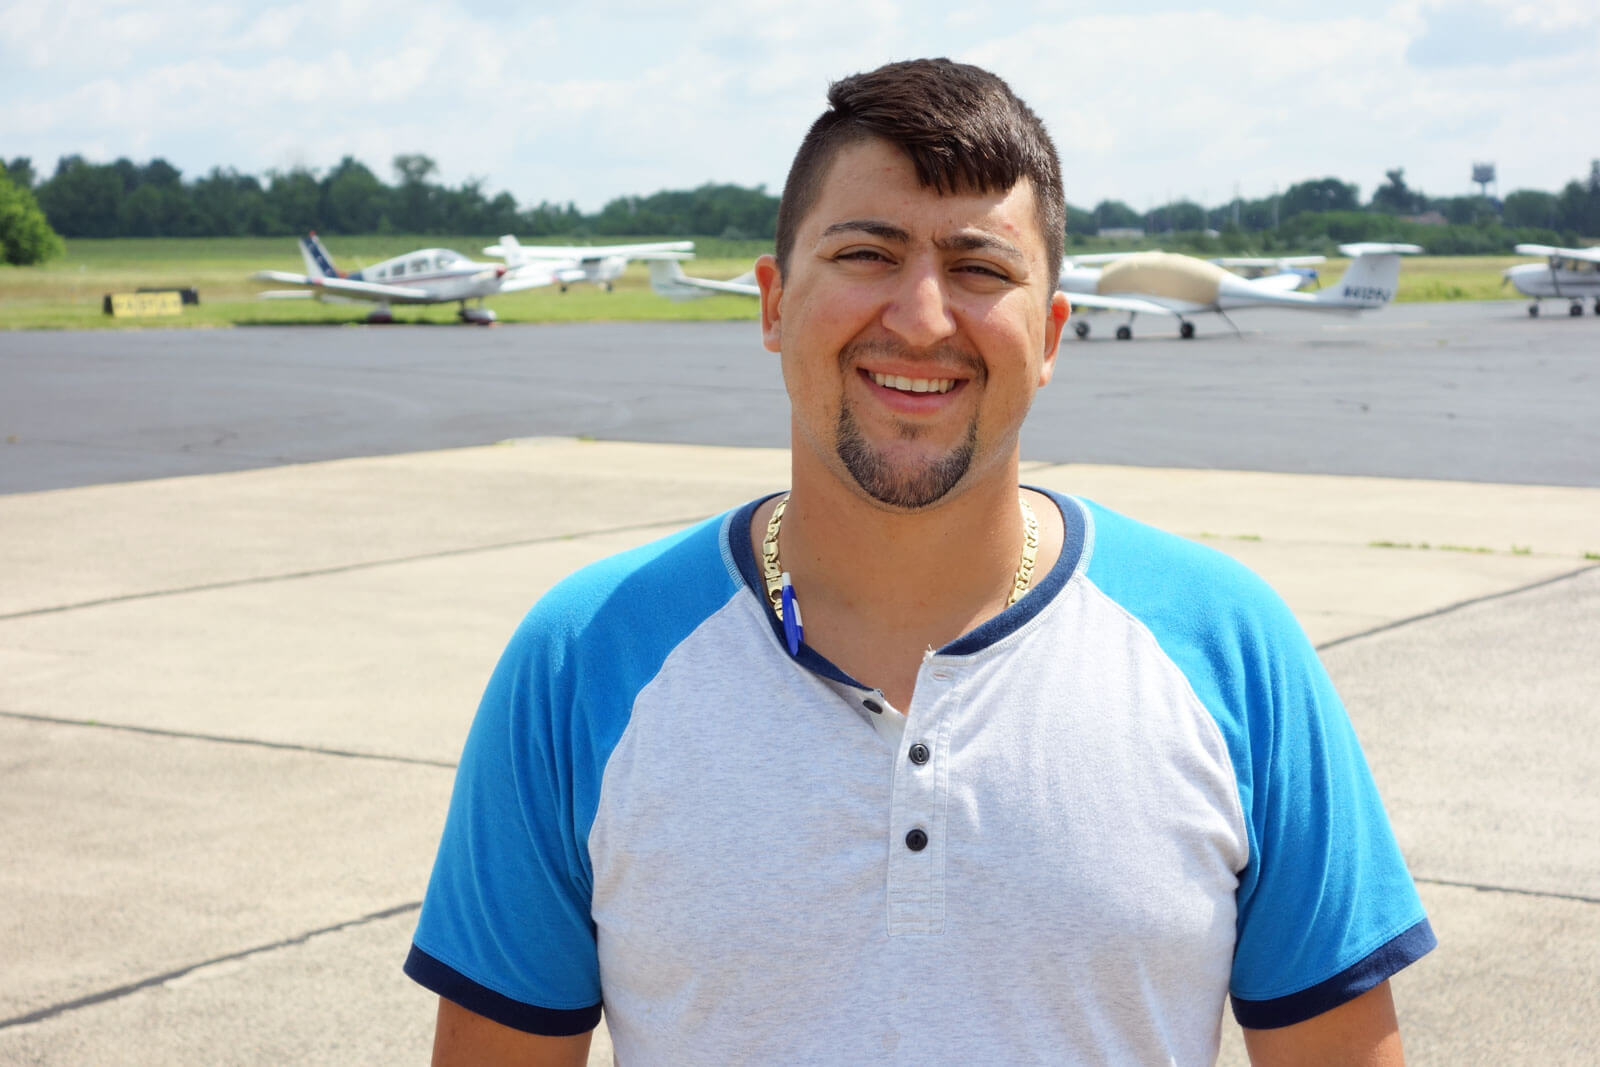 Nick Pengue PFS Flight Coordinator